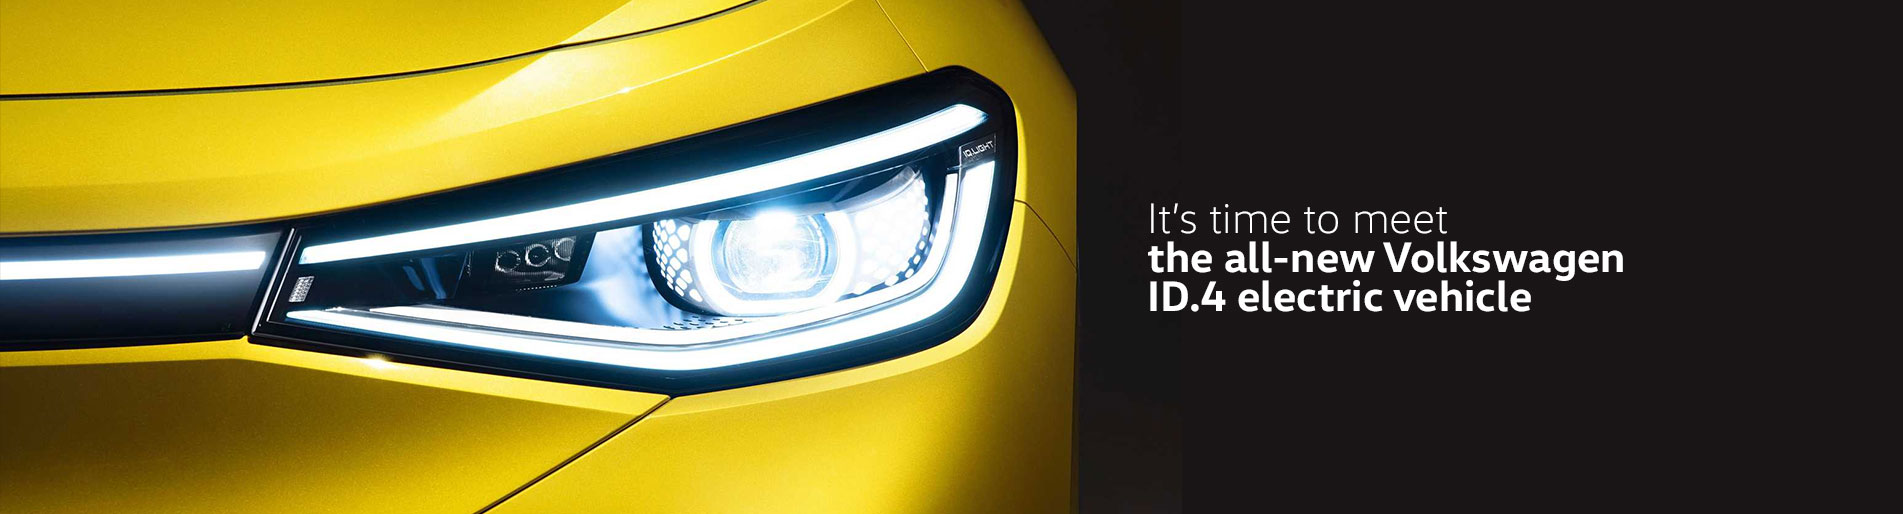 Reserve Your New Volkswagen ID.4